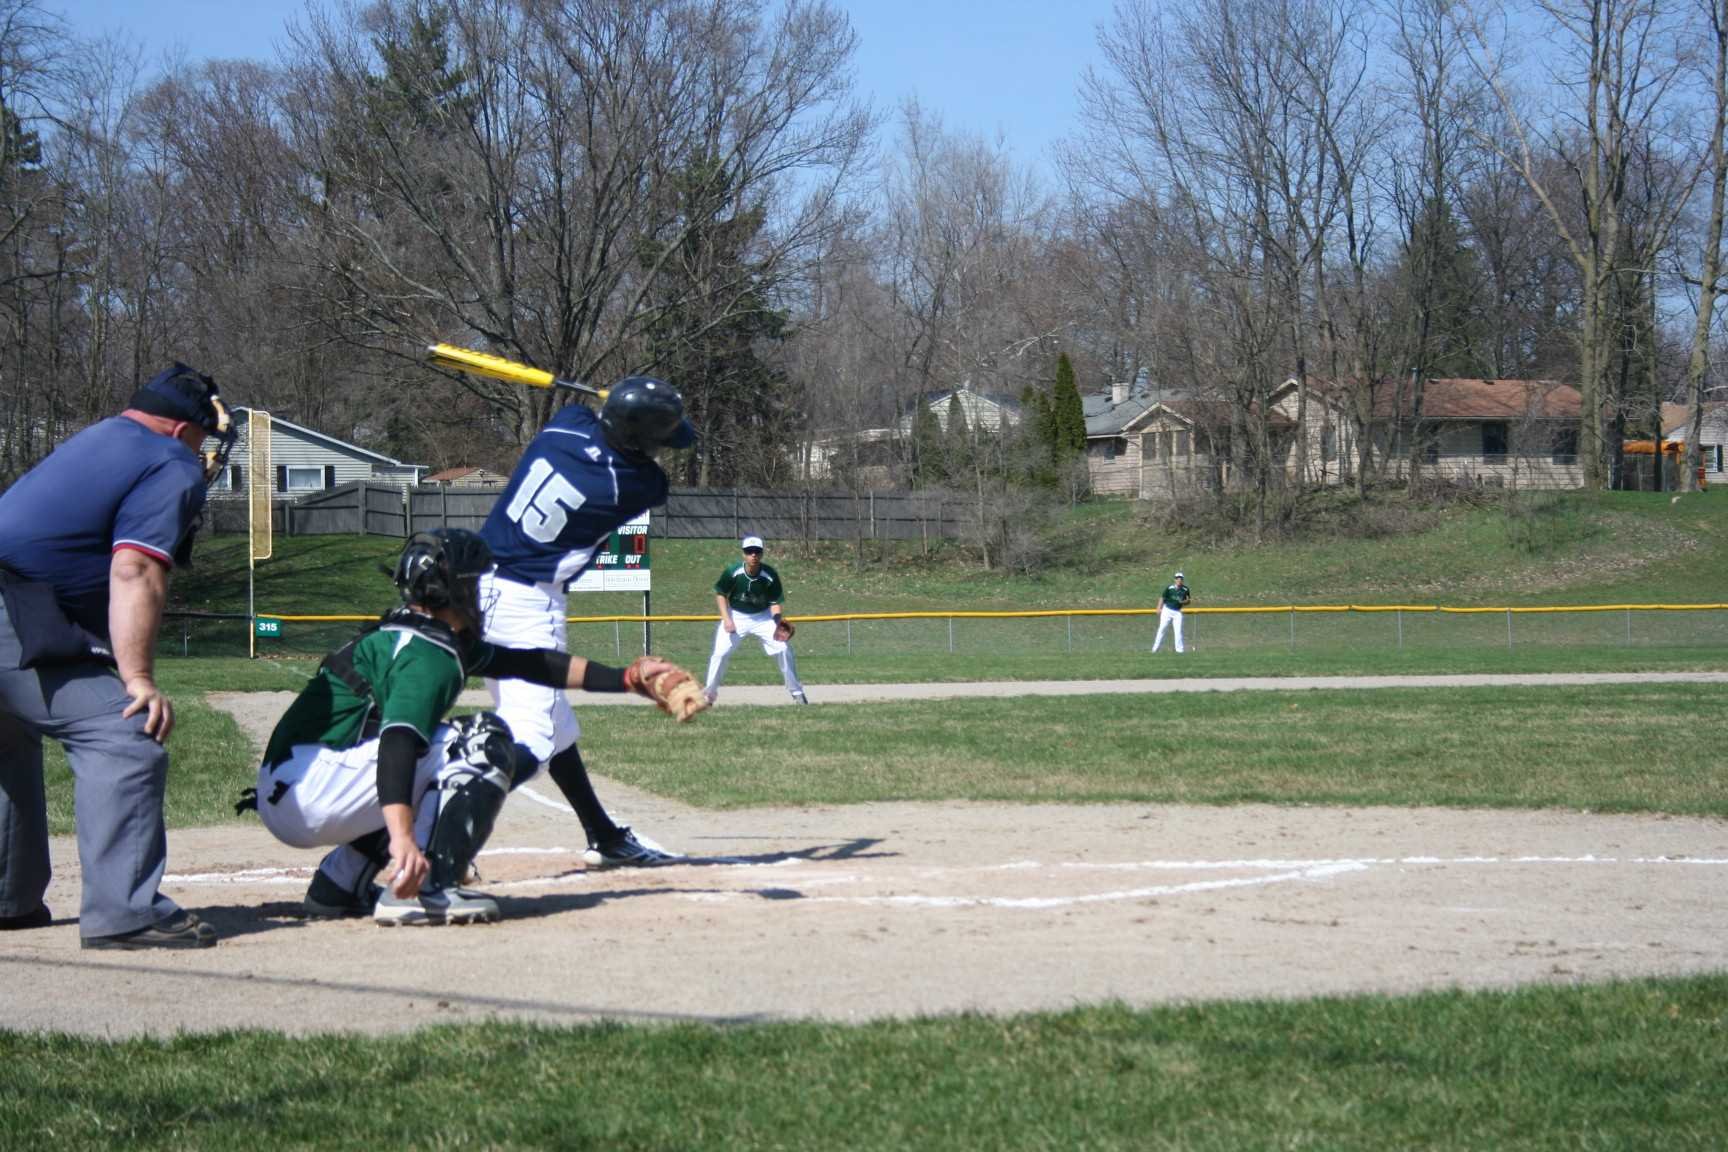 Photo by Mia Leibold Loy Norrix Senior varsity baseball player Thomas Hruska swings the bat at the Norrix varsity game against Hackett on April 22, 2013. Norrix falls with the final score 1-8, Norrix is now 1-2 on the season.